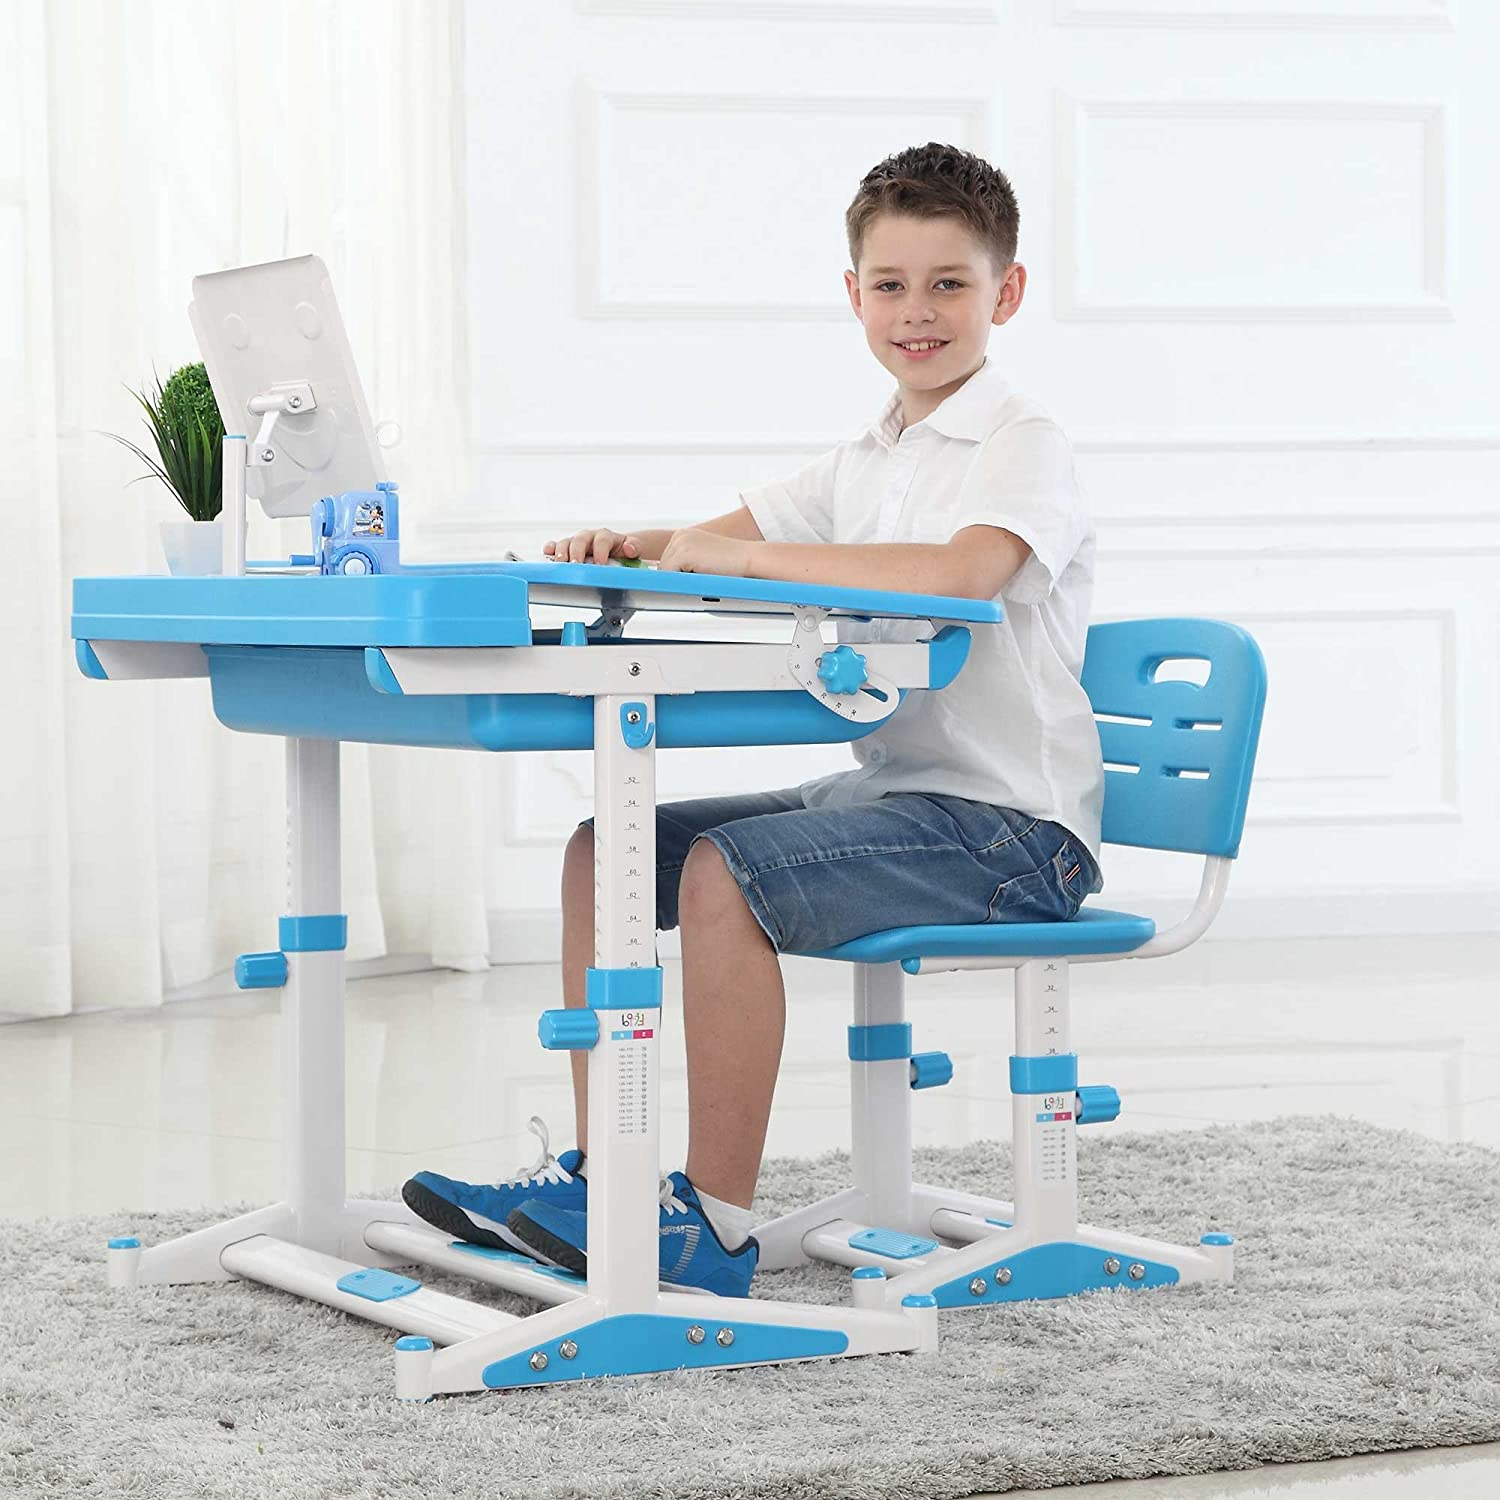 Ergonomic Kids Desk Chair with FREE Steel Bookstand FREE Brown Tiger Seat  Pad Height Adjustable Childrens Desk Chair Kids Table Chair - Sprite Blue  (Lamp ... - Ergonomic Kids Desk Chair With FREE Steel Bookstand FREE Brown